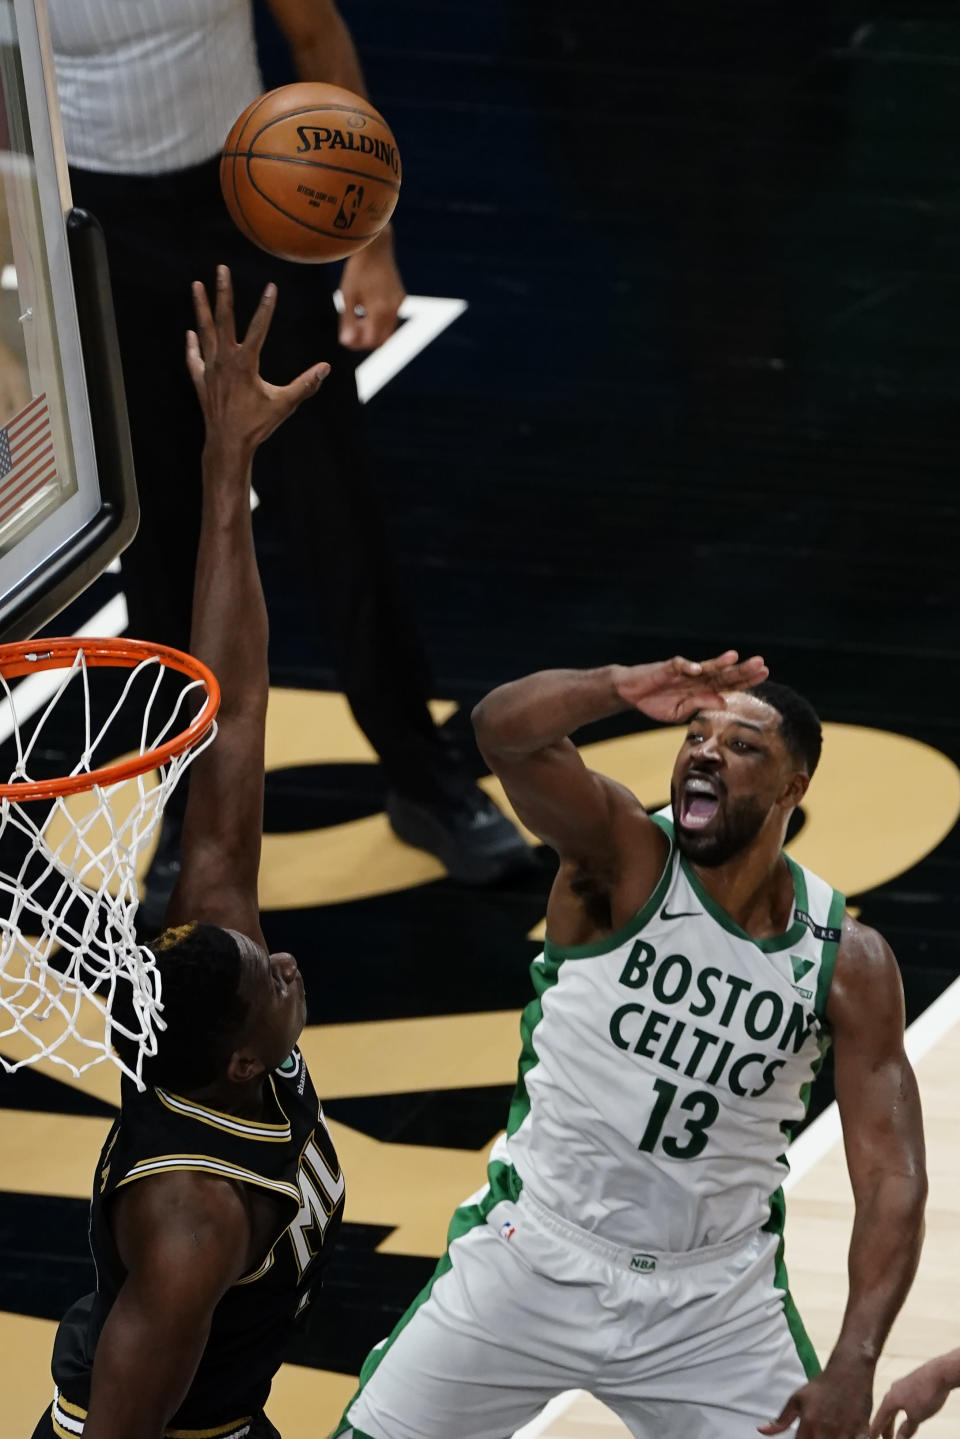 Boston Celtics forward Tristan Thompson (13) reacts as he shots against Atlanta Hawks center Clint Capela (15) in the first half of an NBA basketball game Wednesday, Feb. 24, 2021, in Atlanta. (AP Photo/John Bazemore)